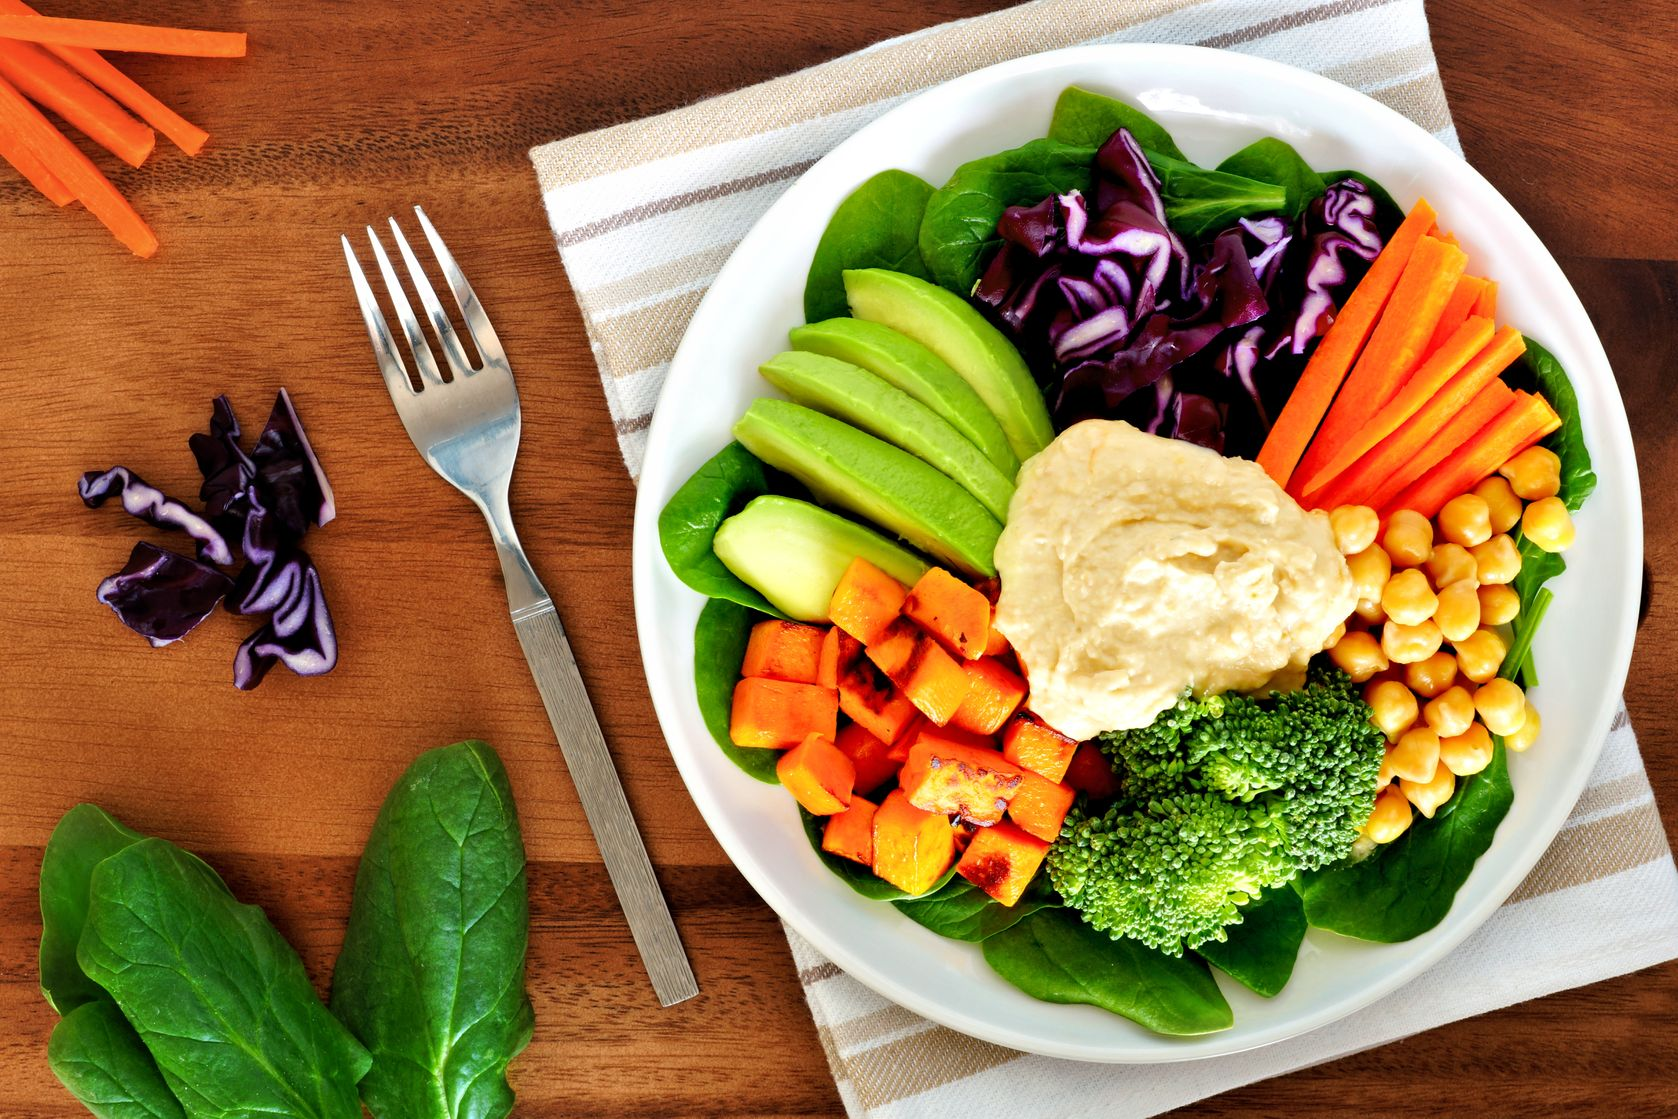 52586093 - healthy lunch bowl with avocado, hummus and fresh vegetables, overhead scene on wooden table